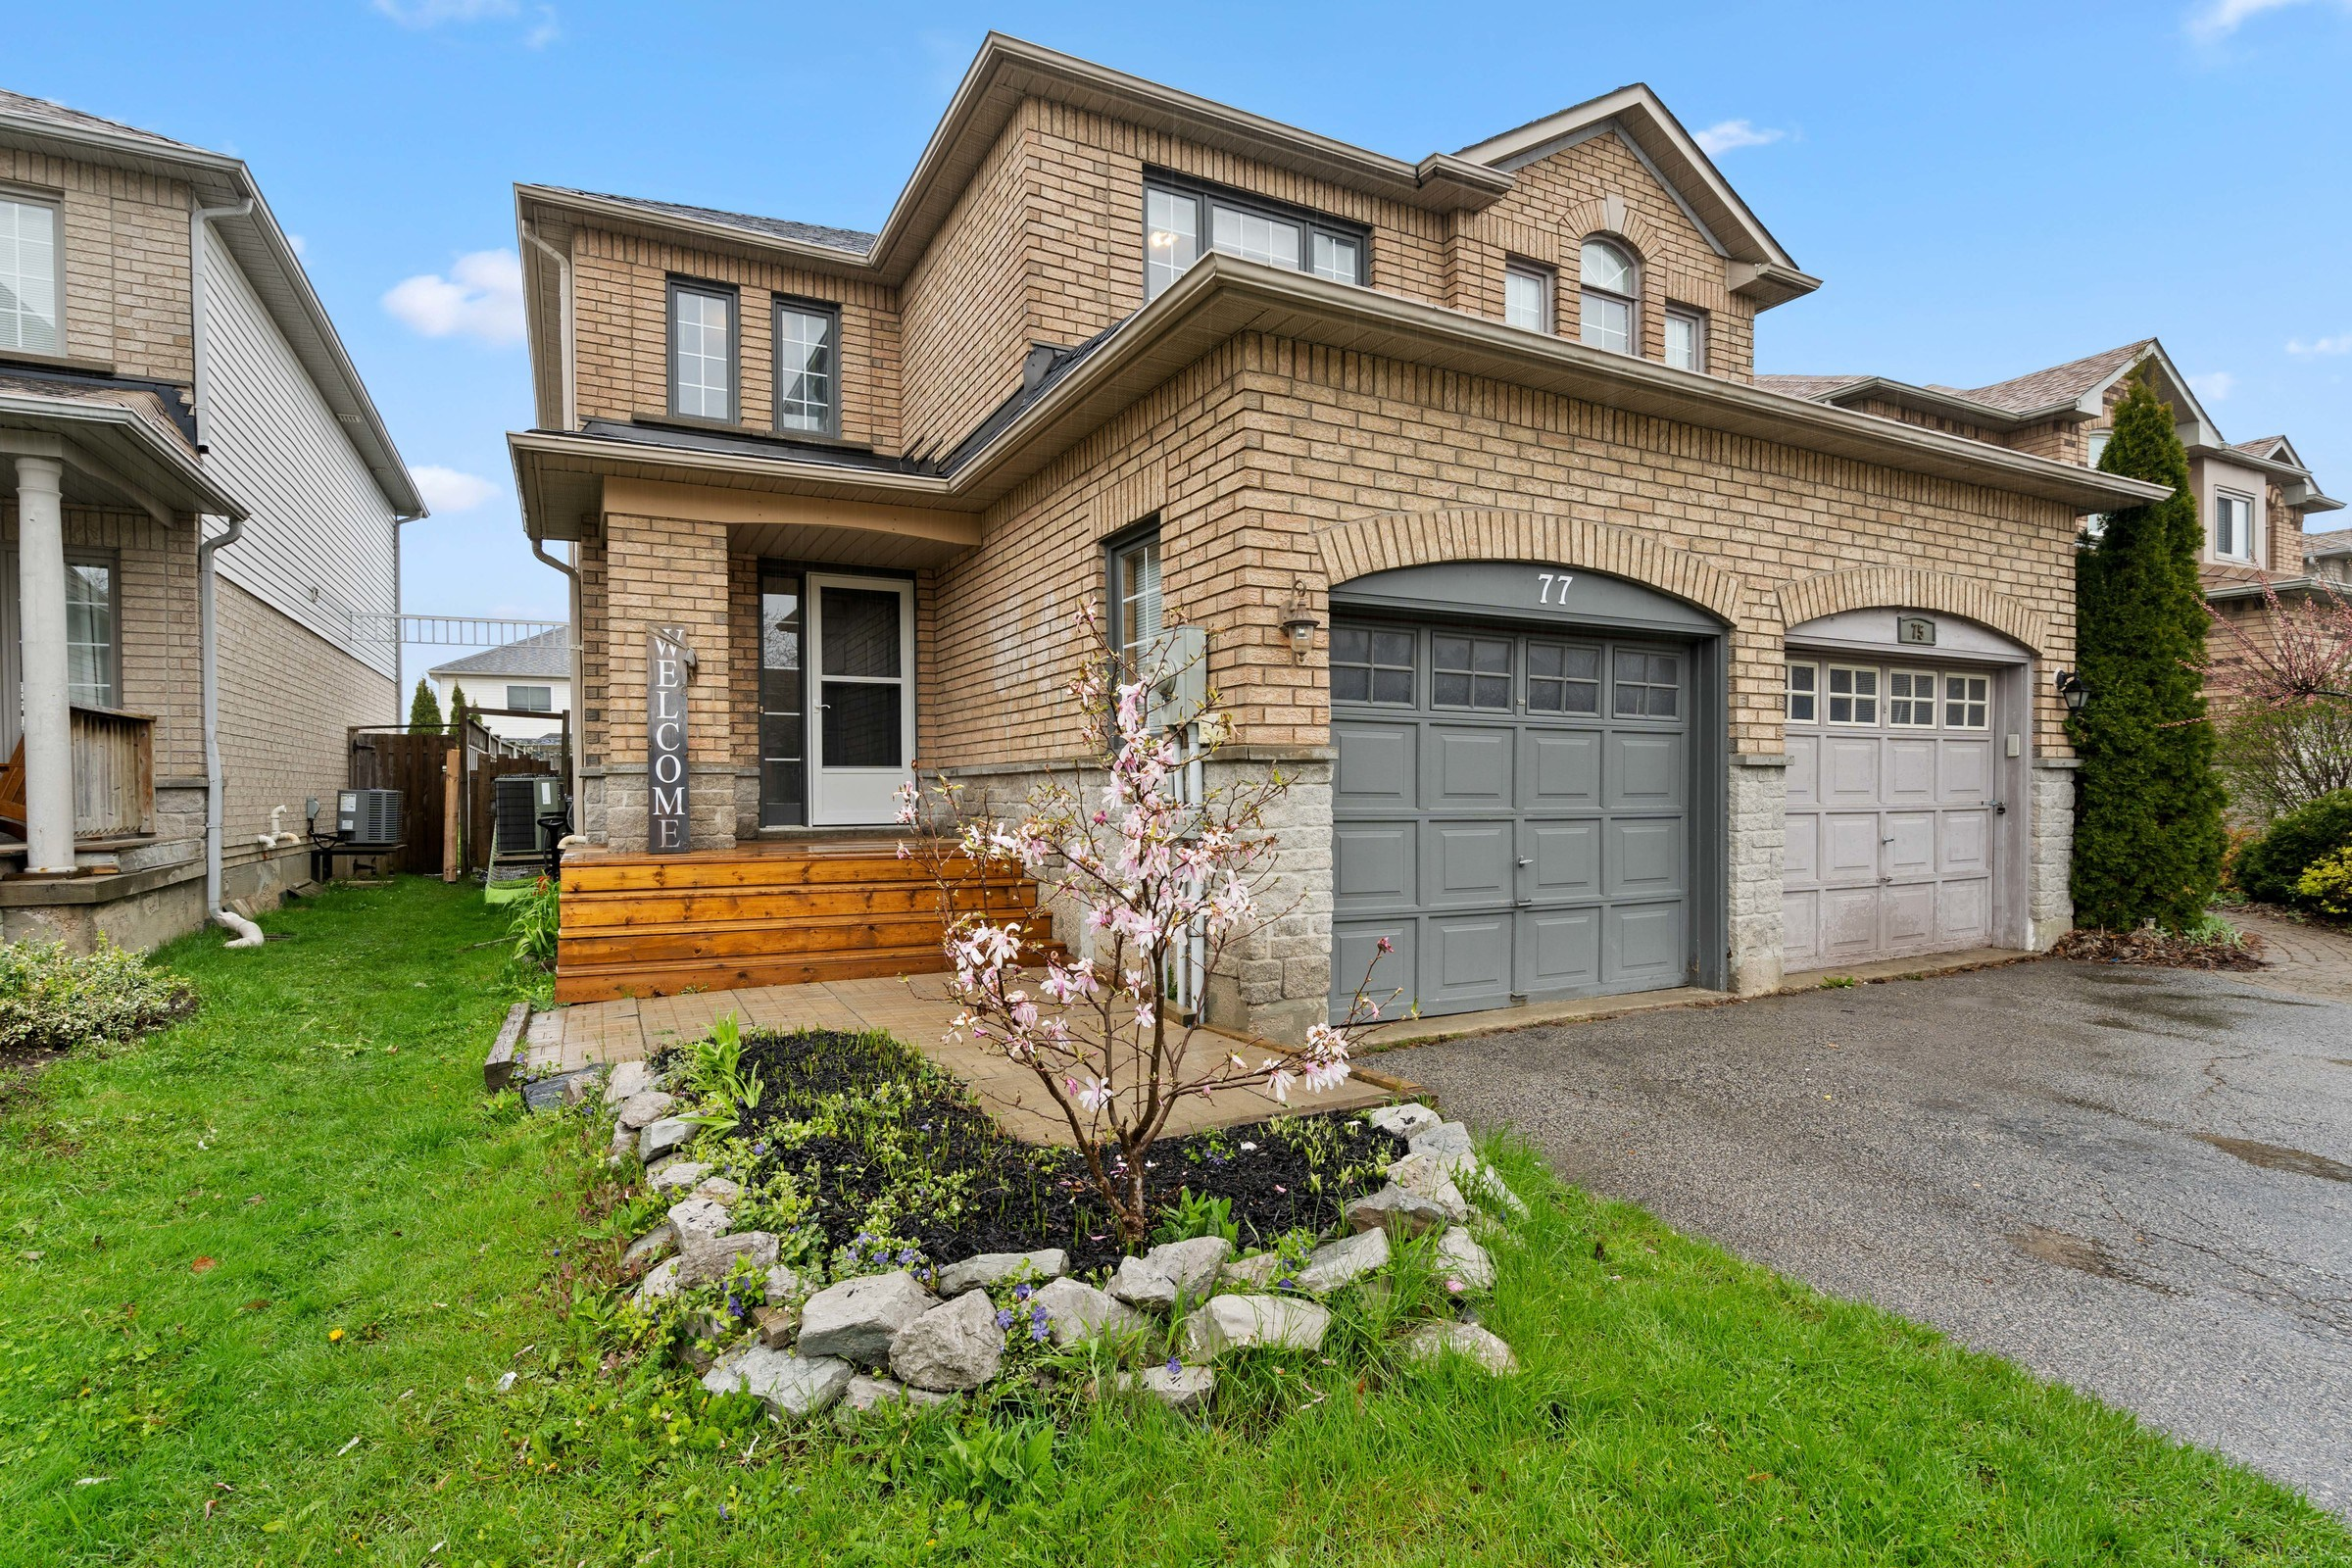 South End Semi-Detached Home For Sale in Barrie